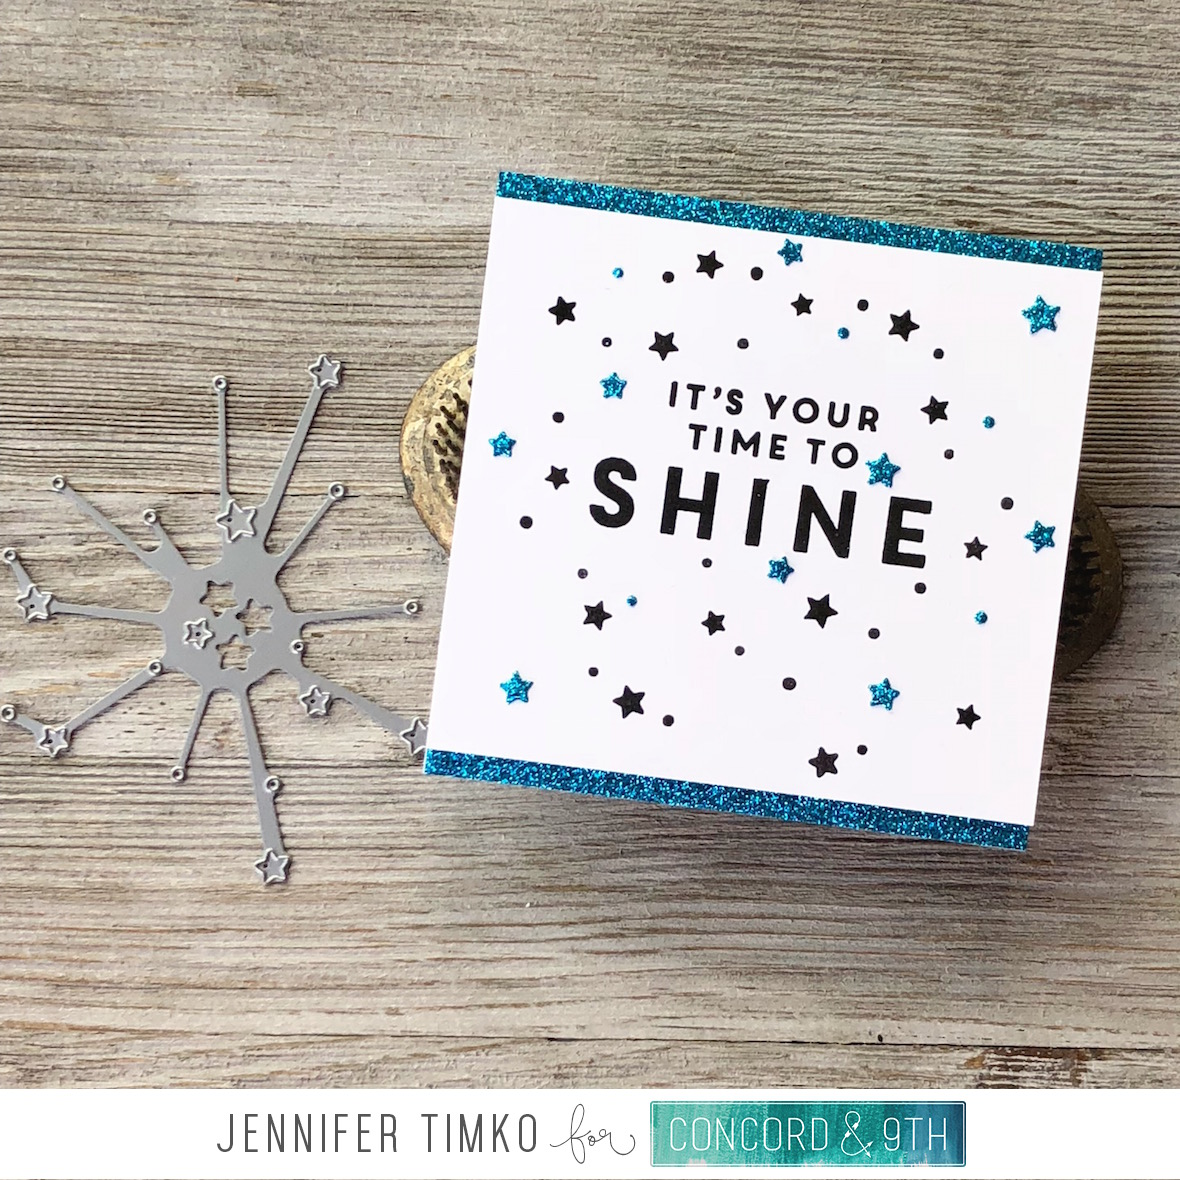 It's Your Time to Shine by Jen Timko | Shine On Stamp Set by Concord and 9th, Star Turnabout Stamp Set and Dies by Concord and 9th, Summer Glitter Paper Pack by Concord and 9th